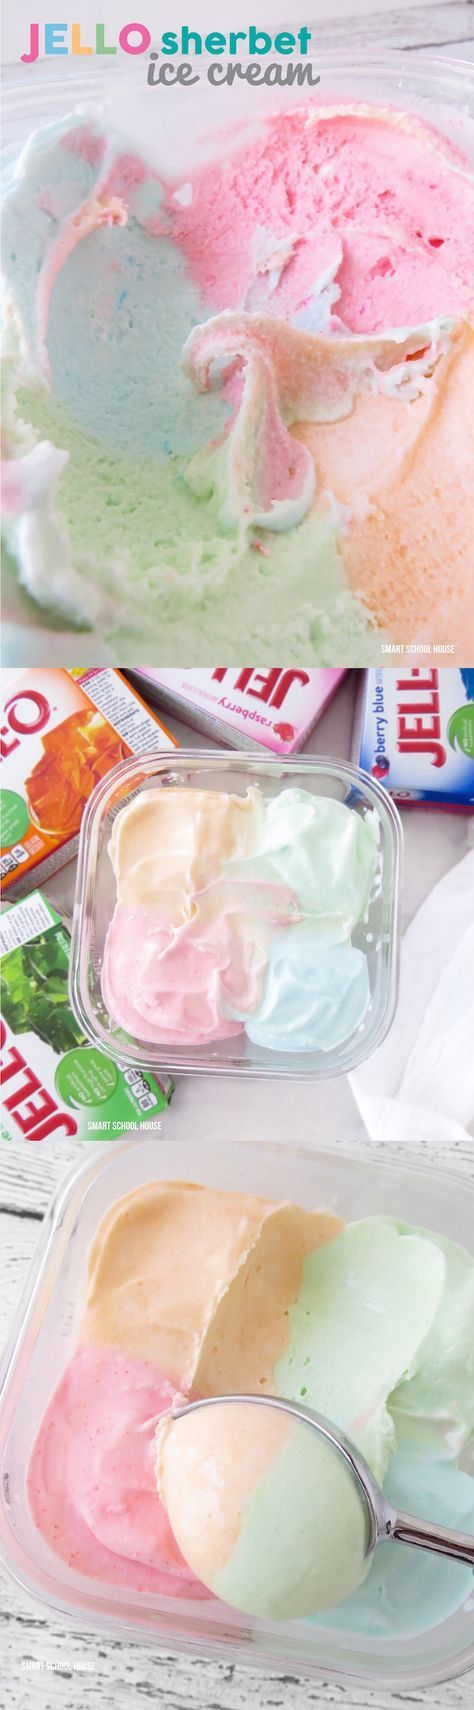 4 Ingredient Jello Ice Cream (VIDEO) is part of Jello ice cream - Oh my gosh! Homemade JELLO ICE CREAM!! This easy recipe shows you how to make it with or without an ice cream maker and only 4 ingredients!